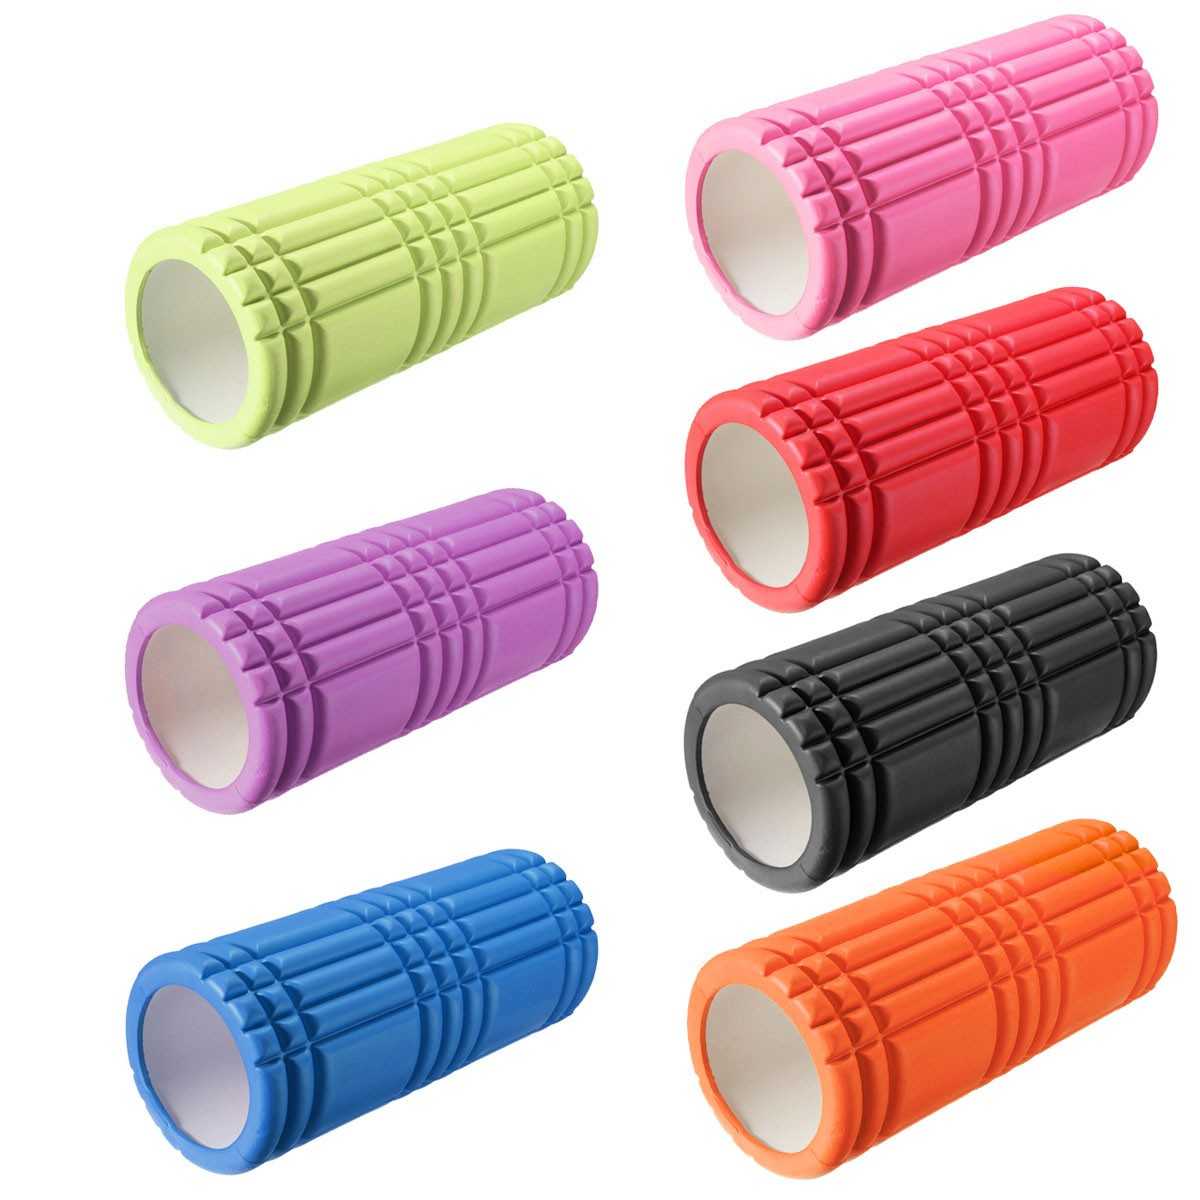 Sports Fitness Yoga Staven Hollow Foam Roller Massage Gym Oefeningen Body Building